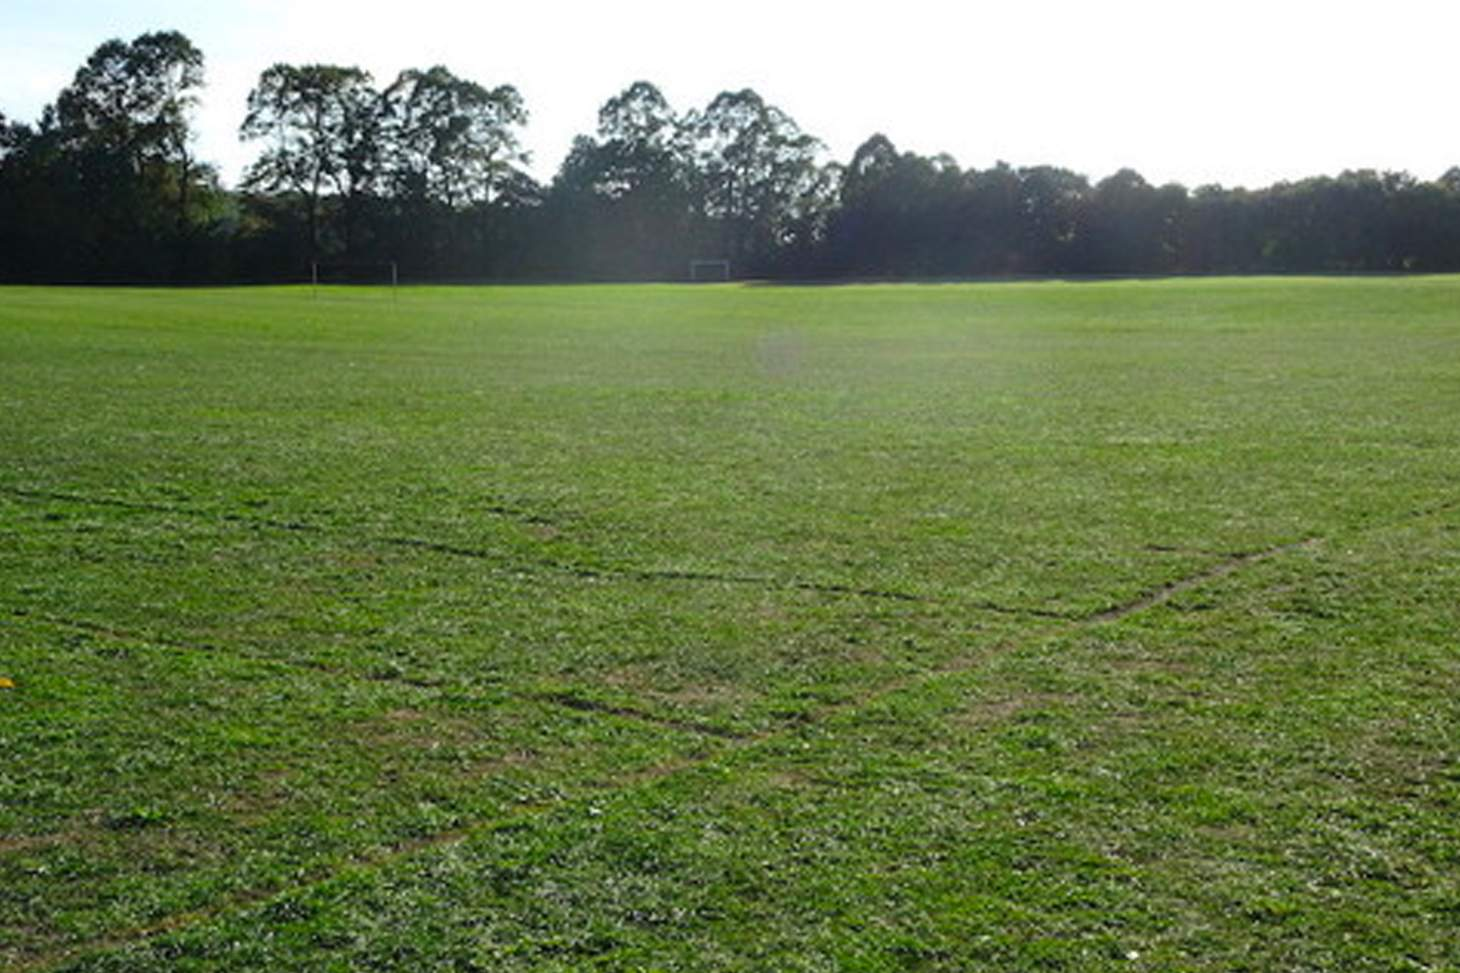 Wilmington Grammar School for Boys Pitch | Grass rugby pitch